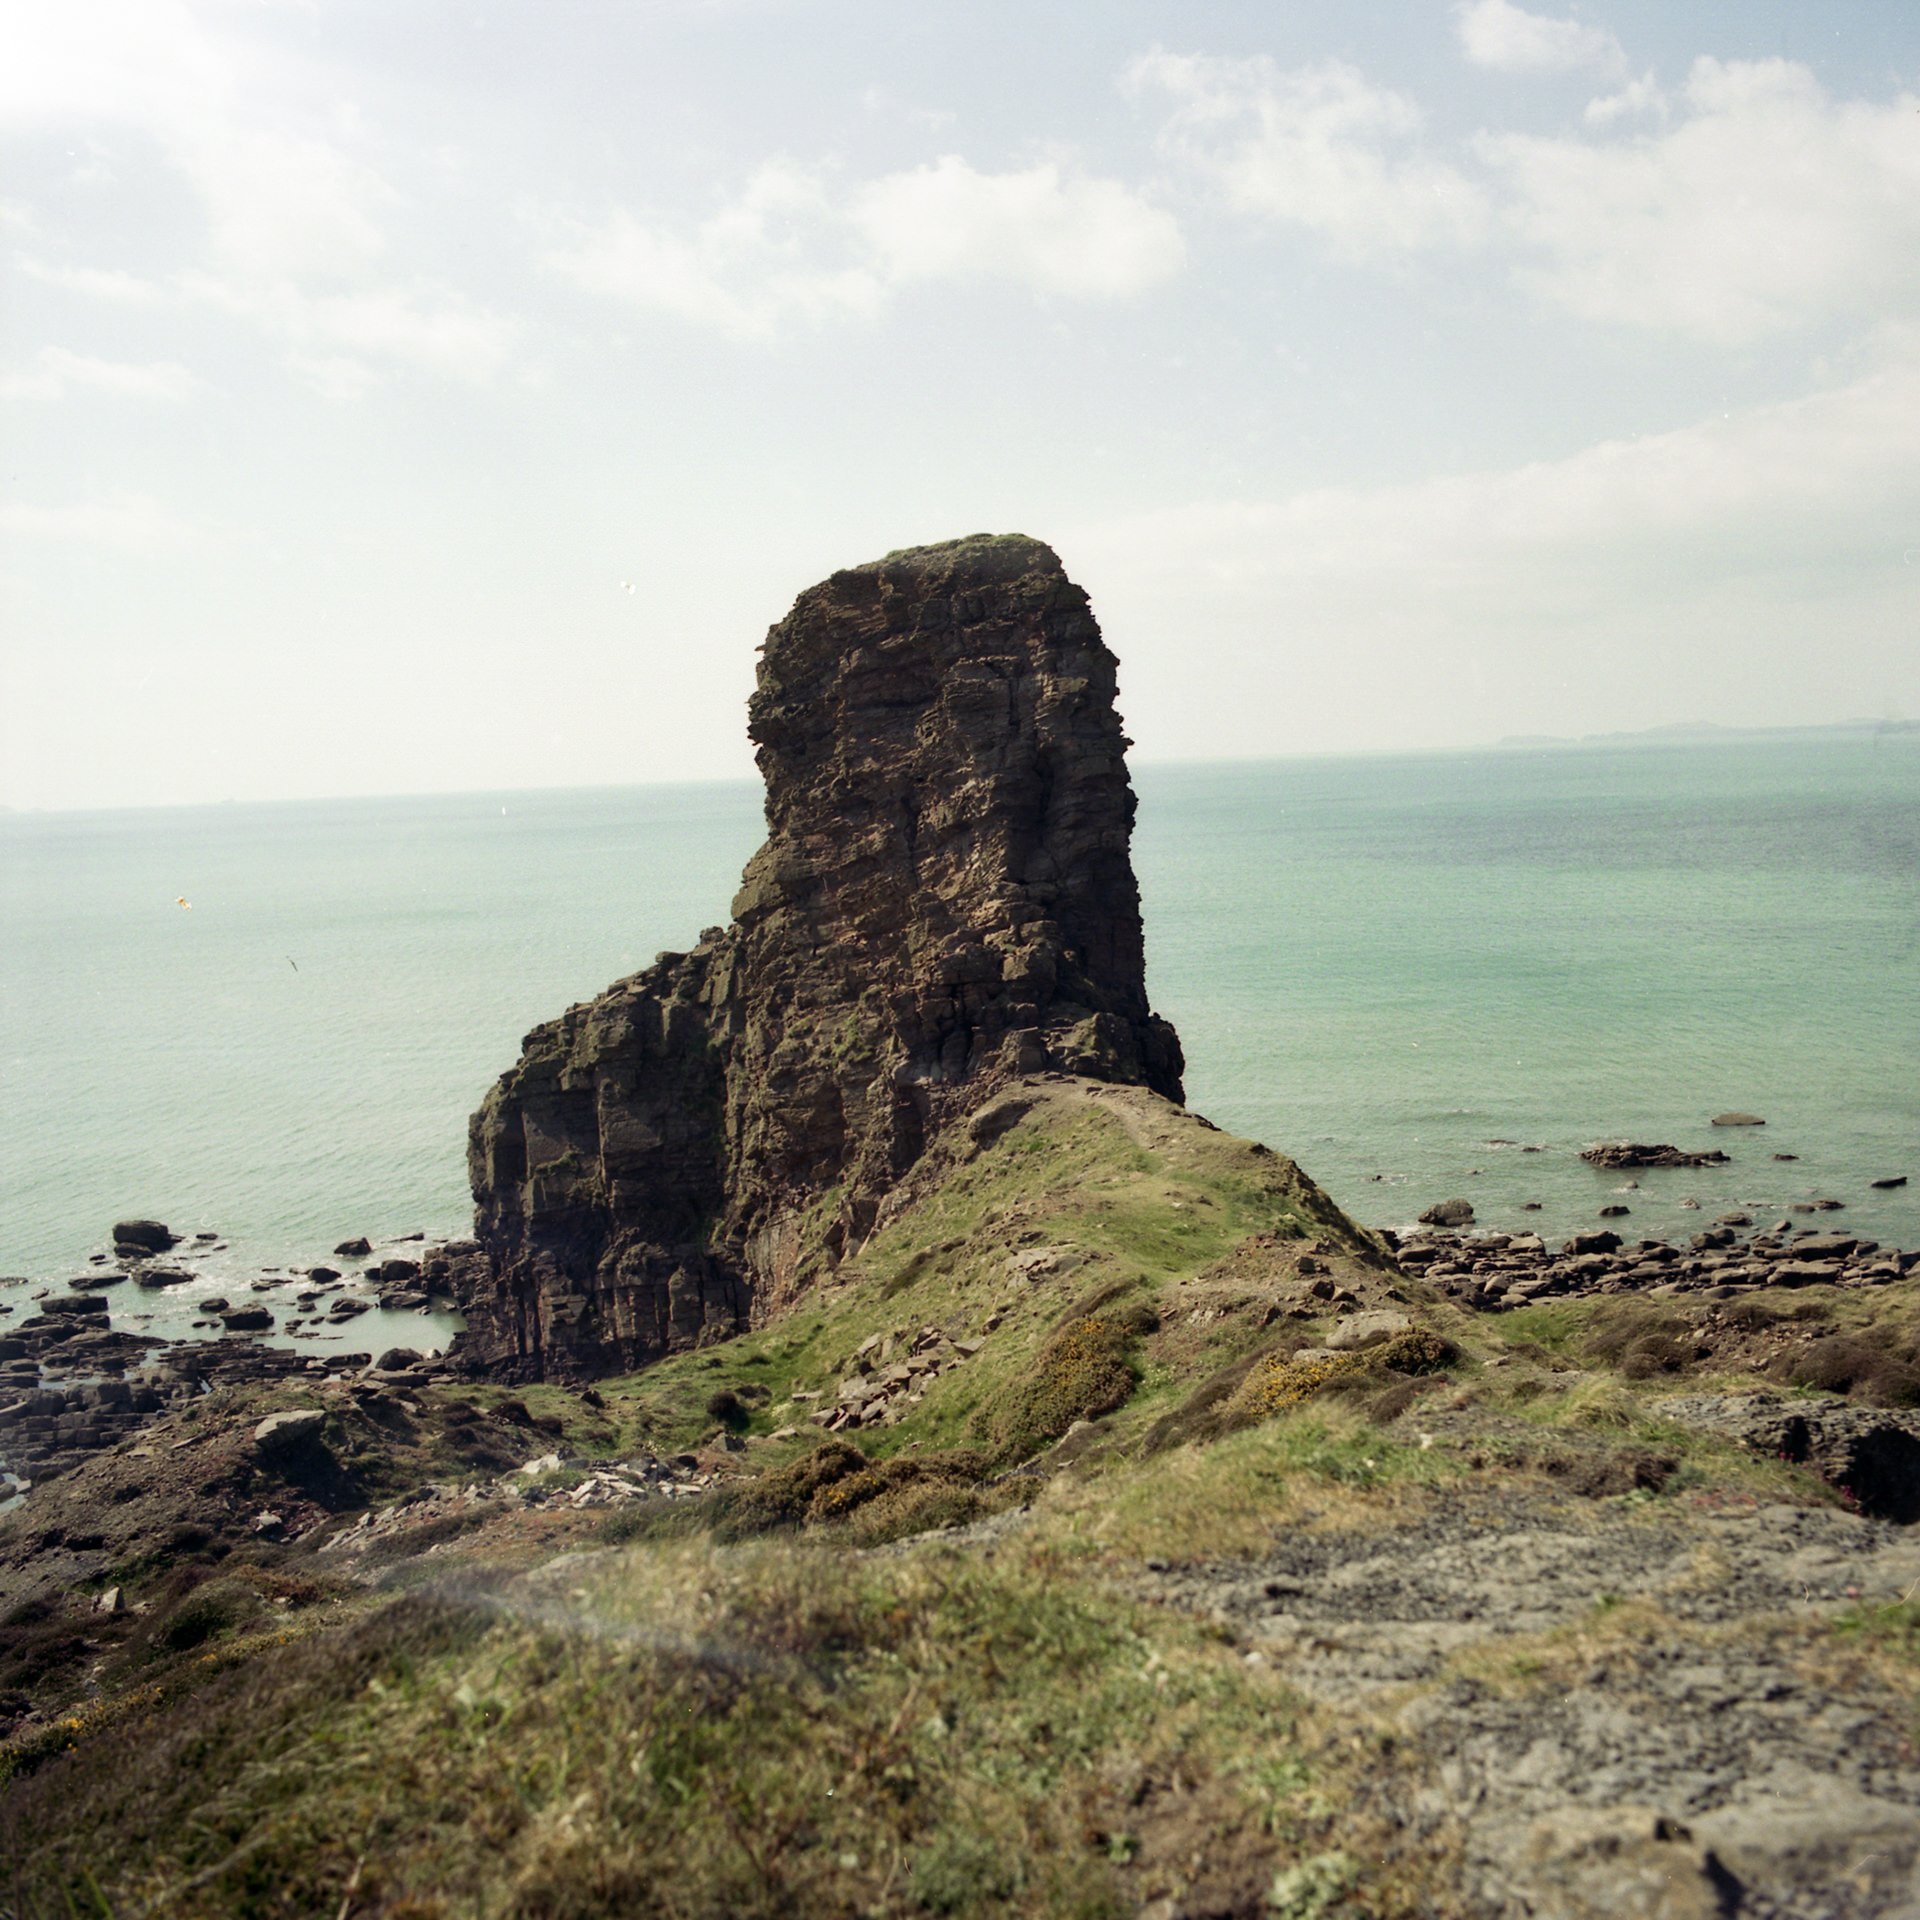 A rock pertruding up towards the sky on a green grassed cliff edge